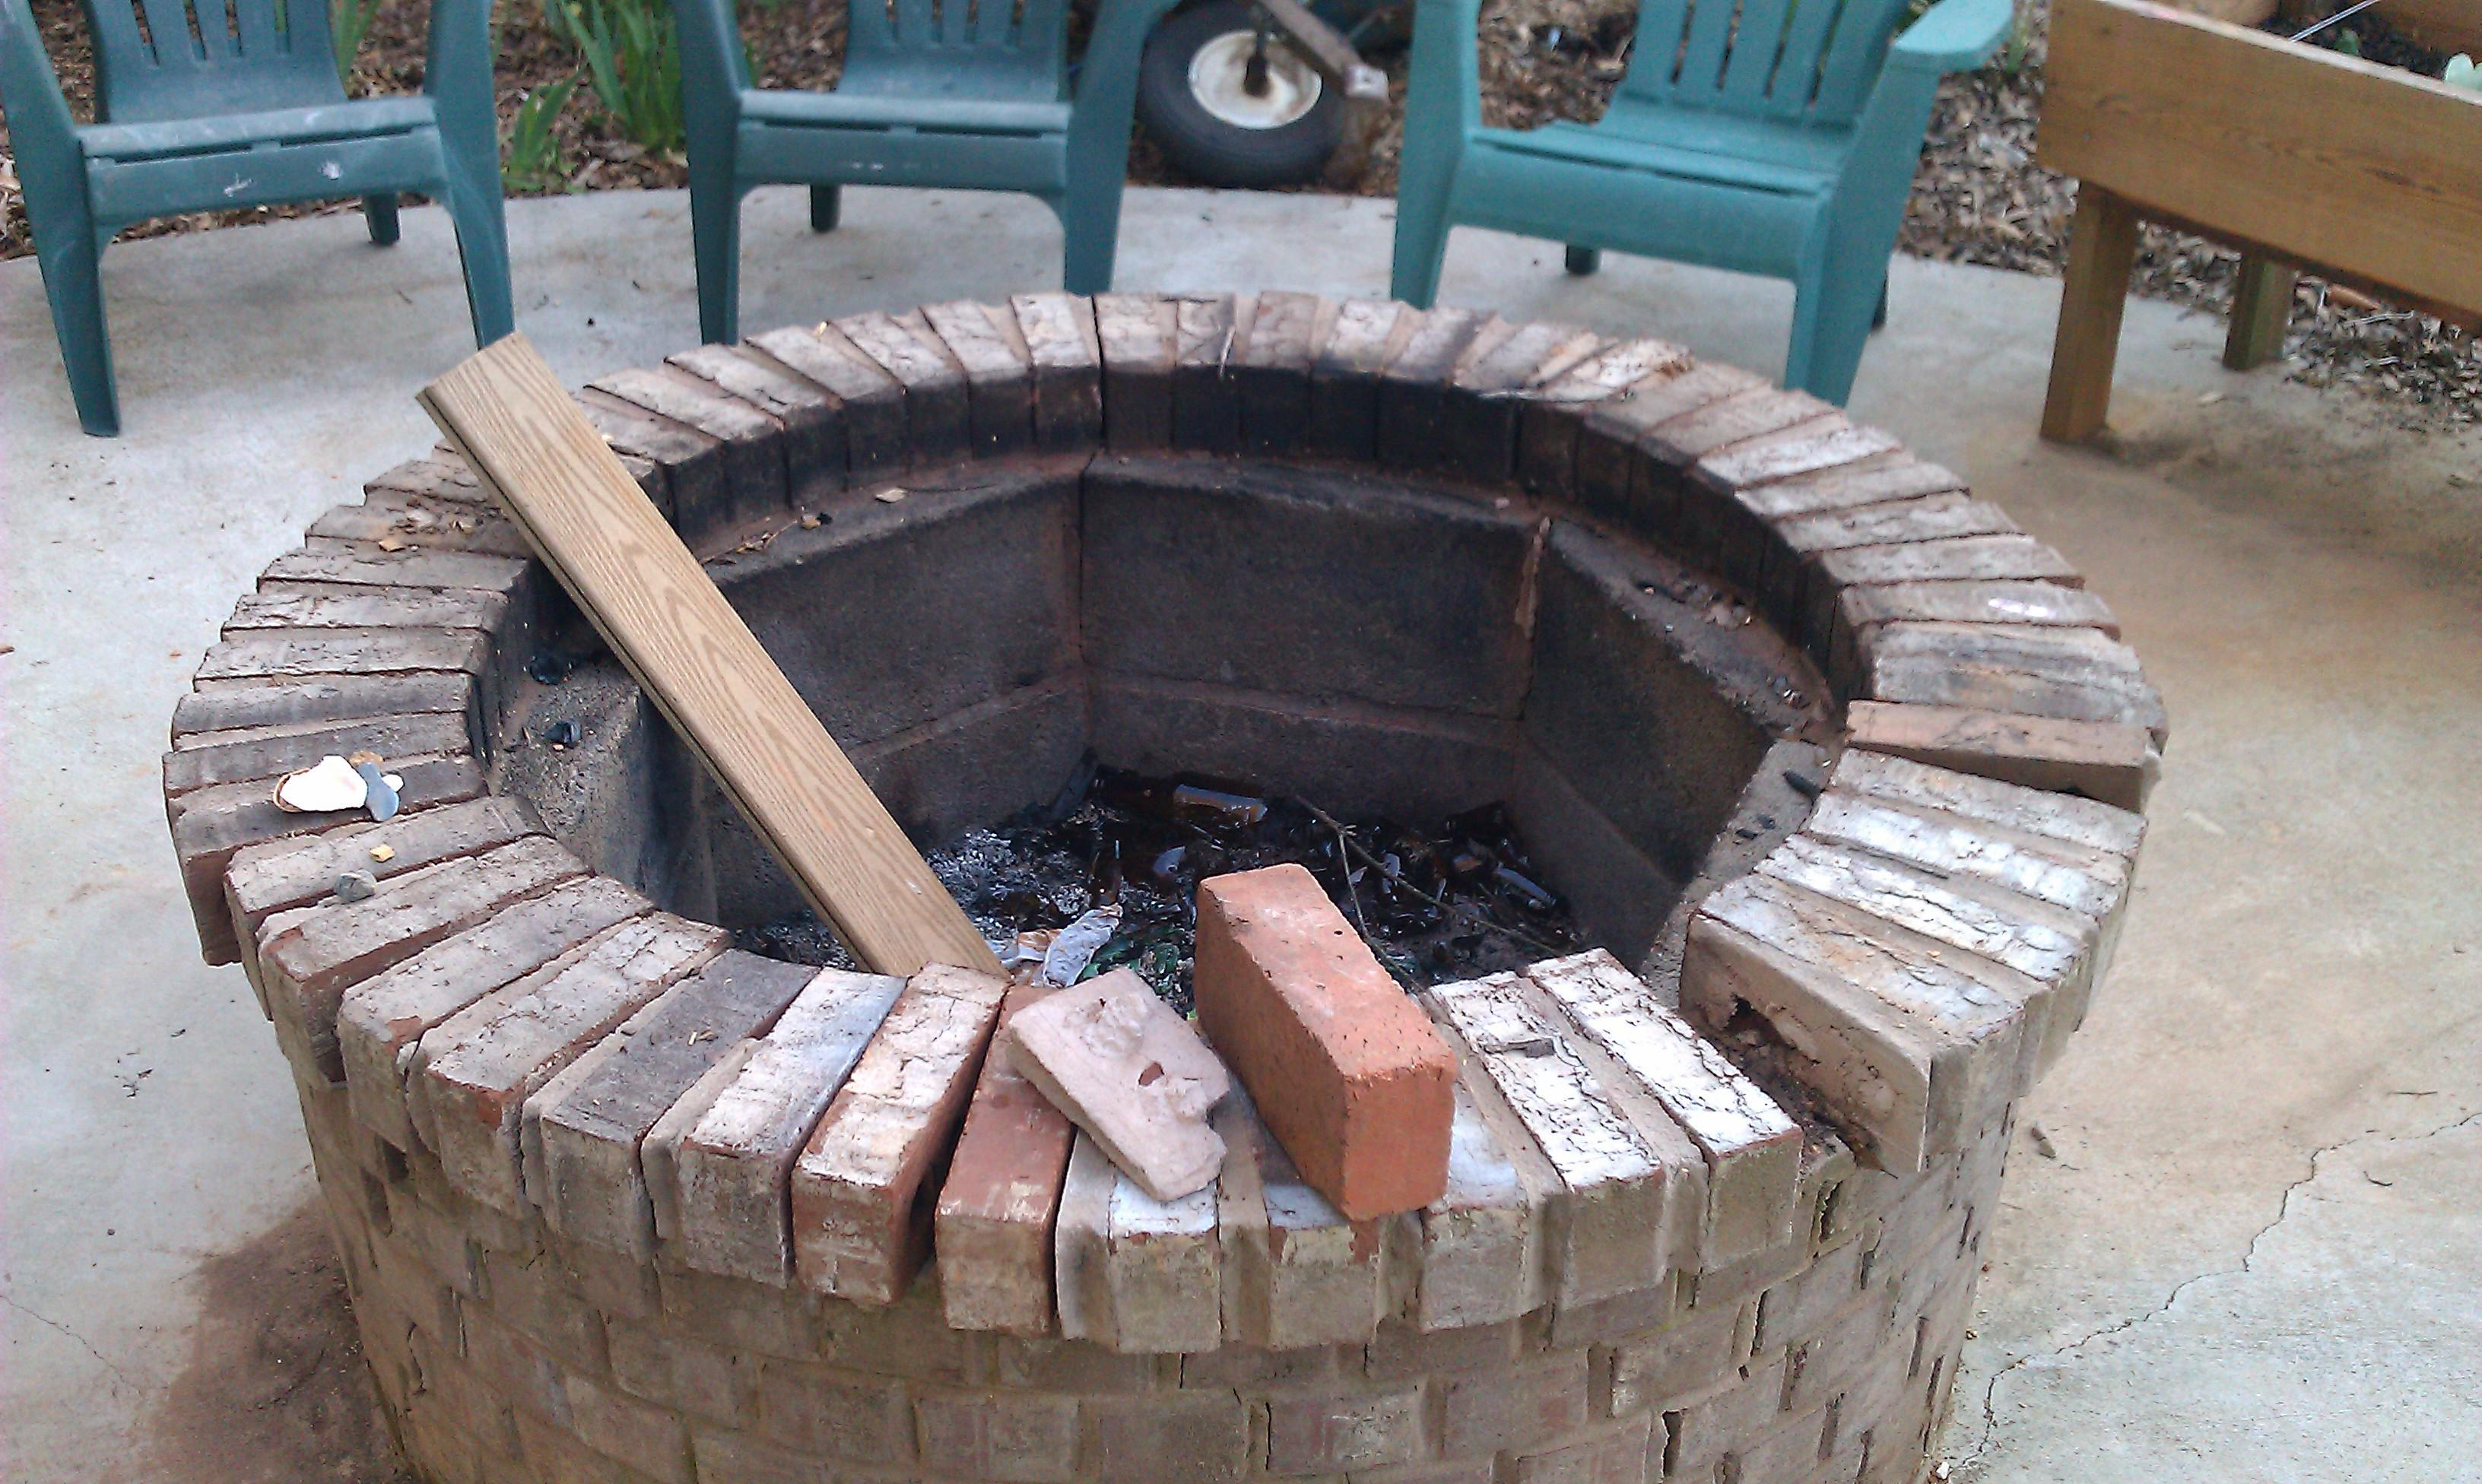 fire pit ideas. build fire pit table. After DIY Fire Pit. diy outdoor ...